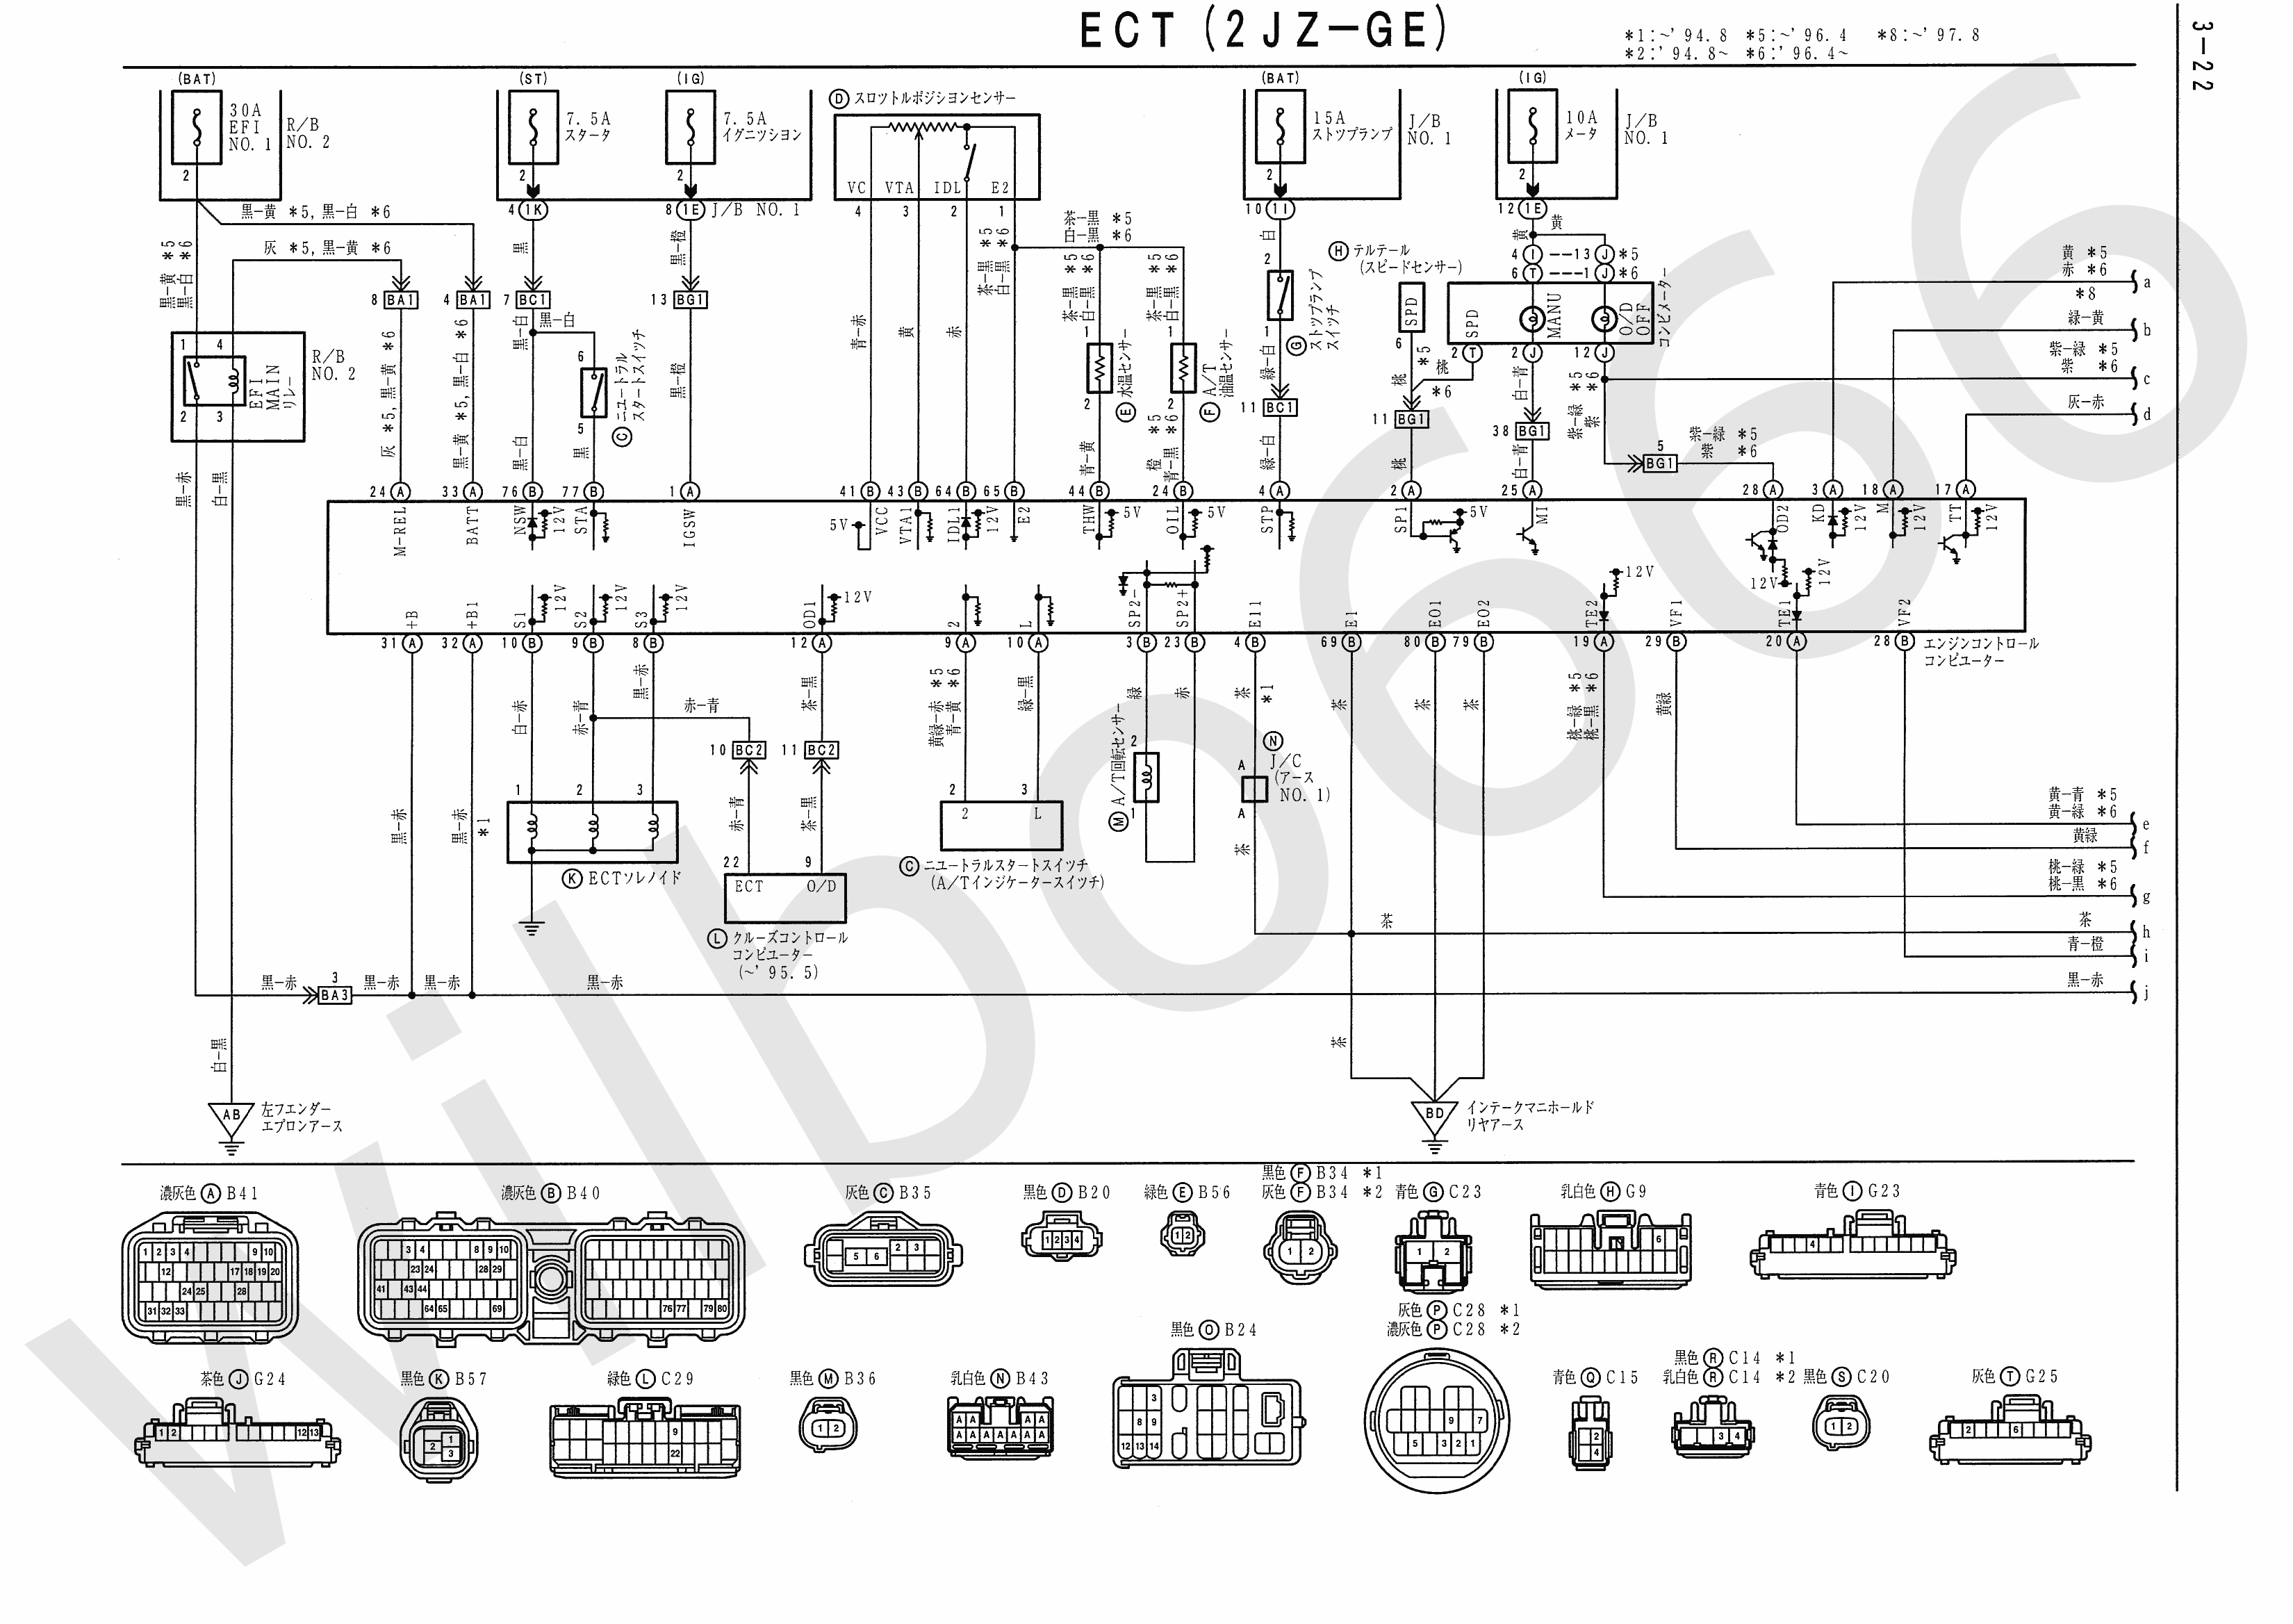 JZA80 Electrical Wiring Diagram 6742505 3 22?resize\=665%2C471 aritech cs 250 wiring diagram \u2022 indy500 co  at gsmx.co